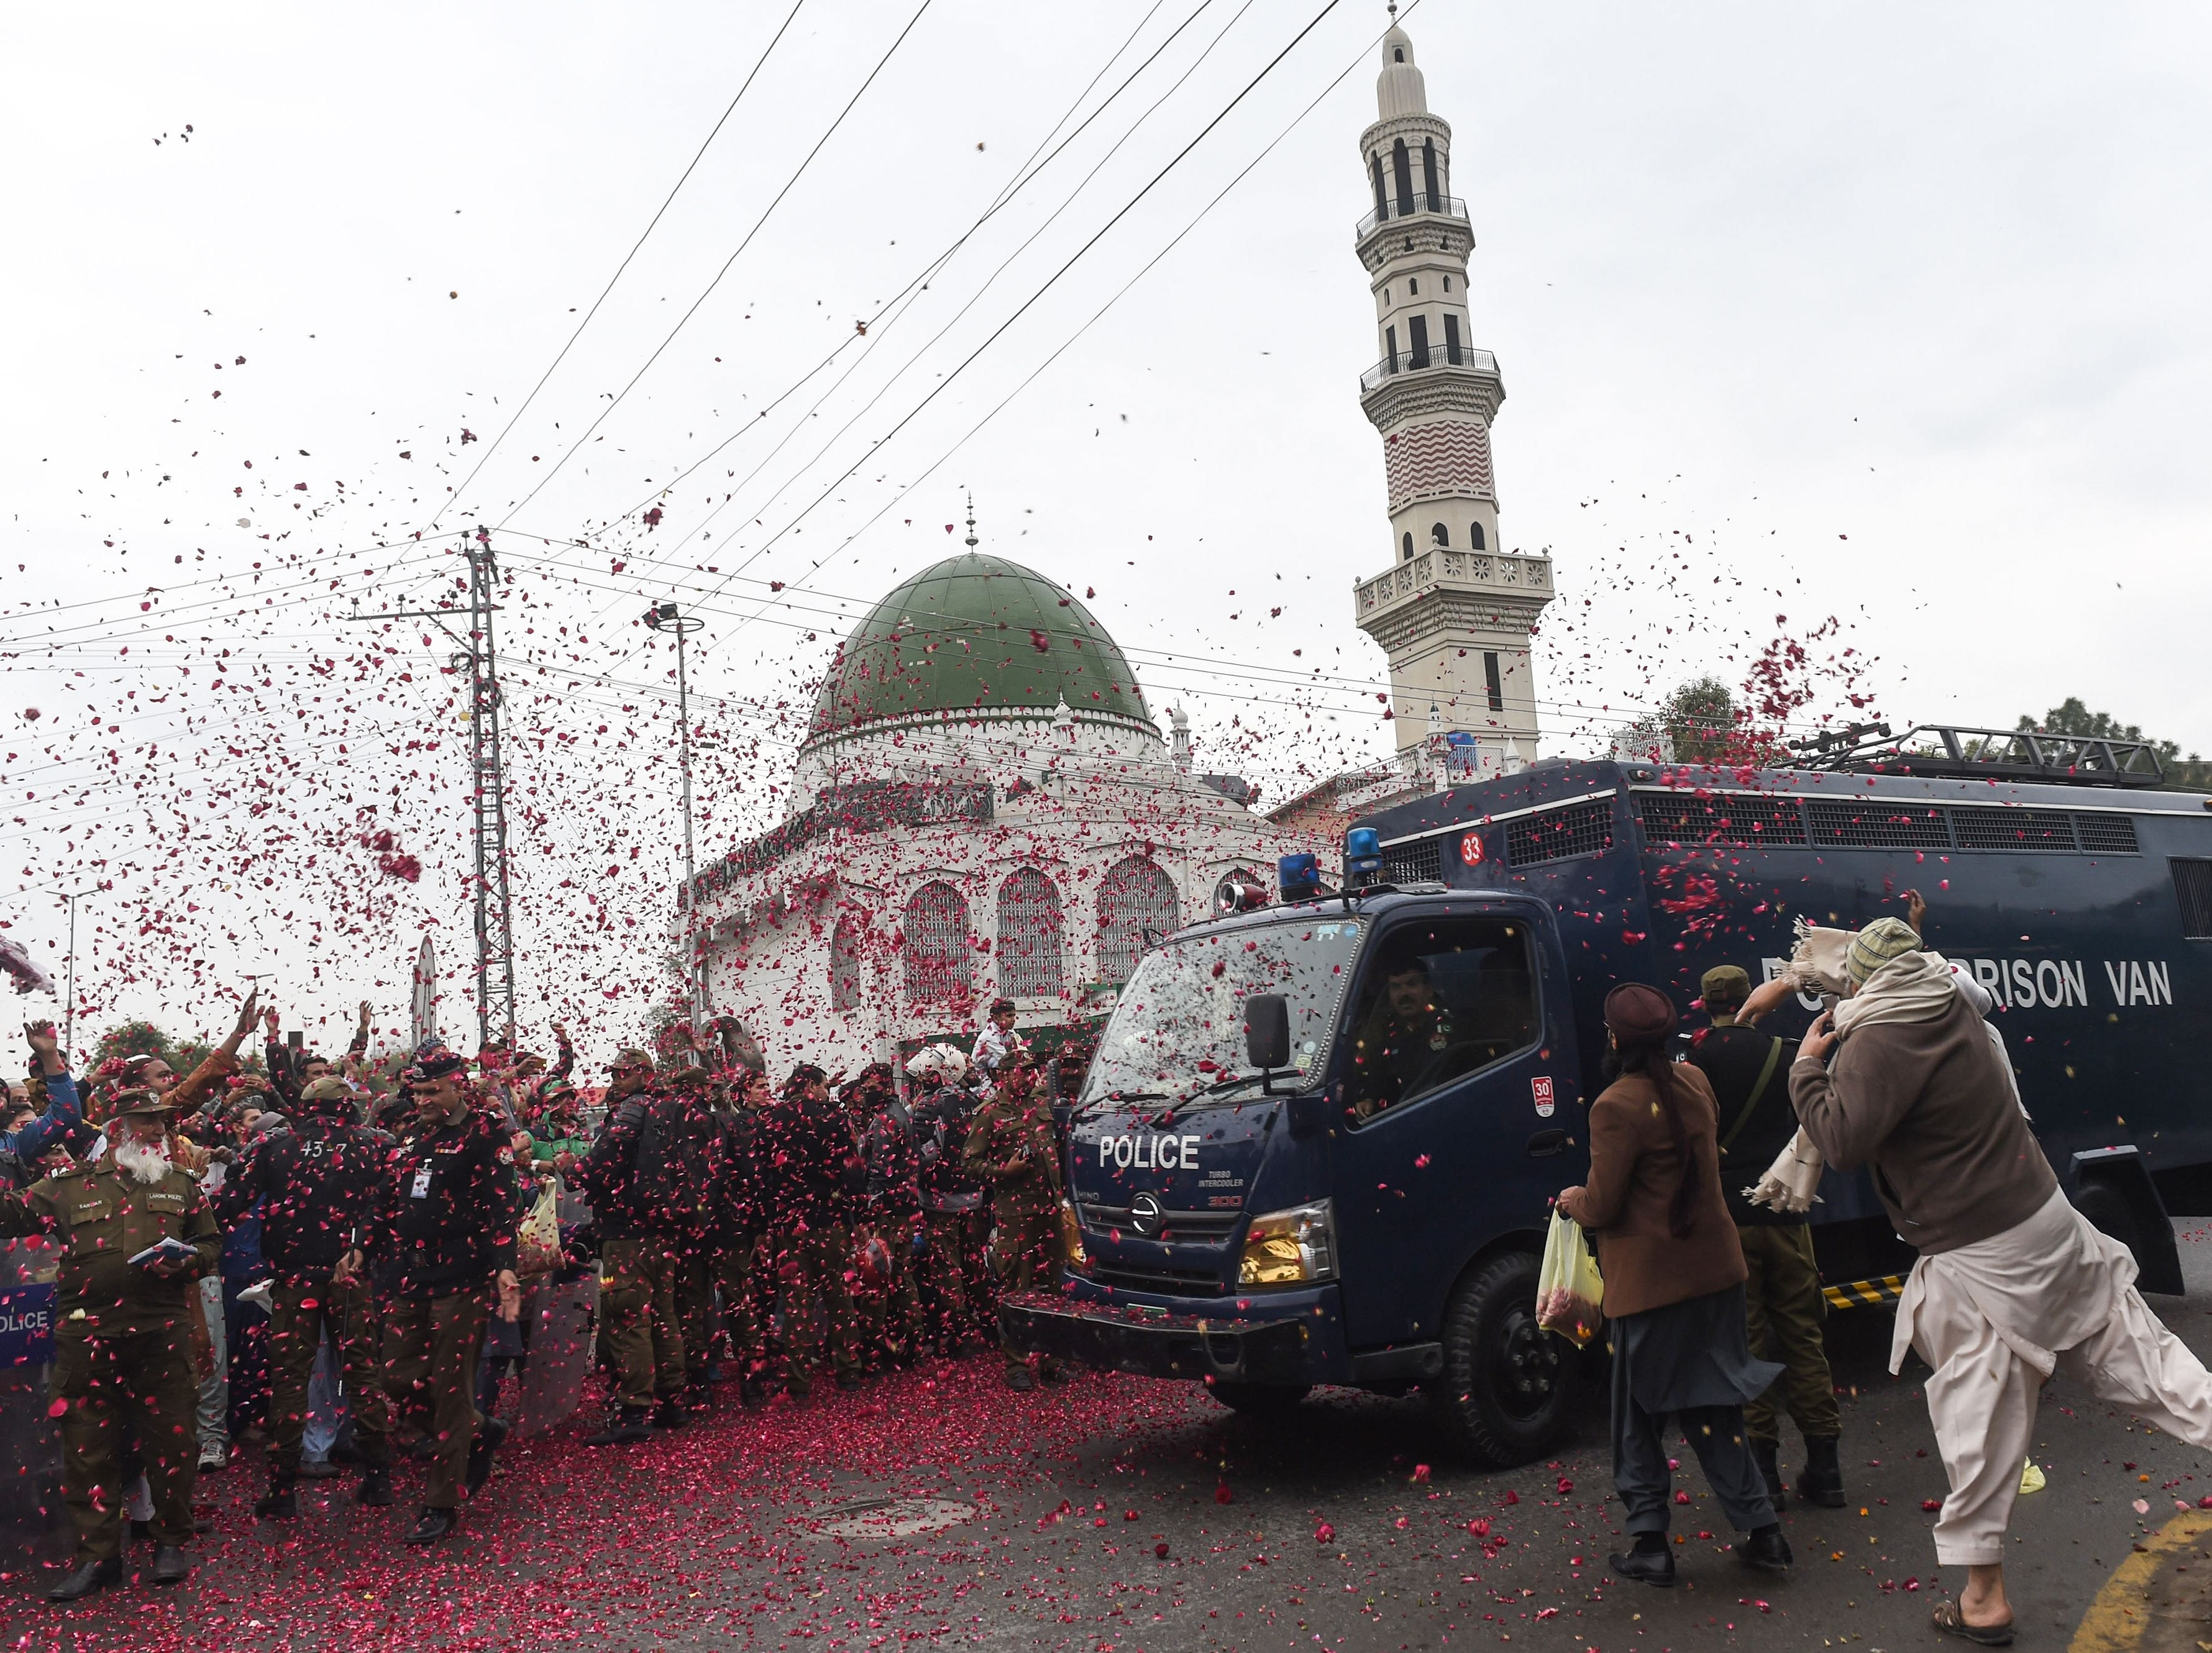 Pakistani activists of the Tehreek-Labaik Pakistan (TLP) party throw rose petals over a police van carrying the leader Khadim Hussain Rizvi as he arrives at an anti-terrorist court during a hearing in Lahore on Feb. 18, 2019, following earlier protests in opposition to the acquittal of Christian Asia Bibi from blasphemy charges.